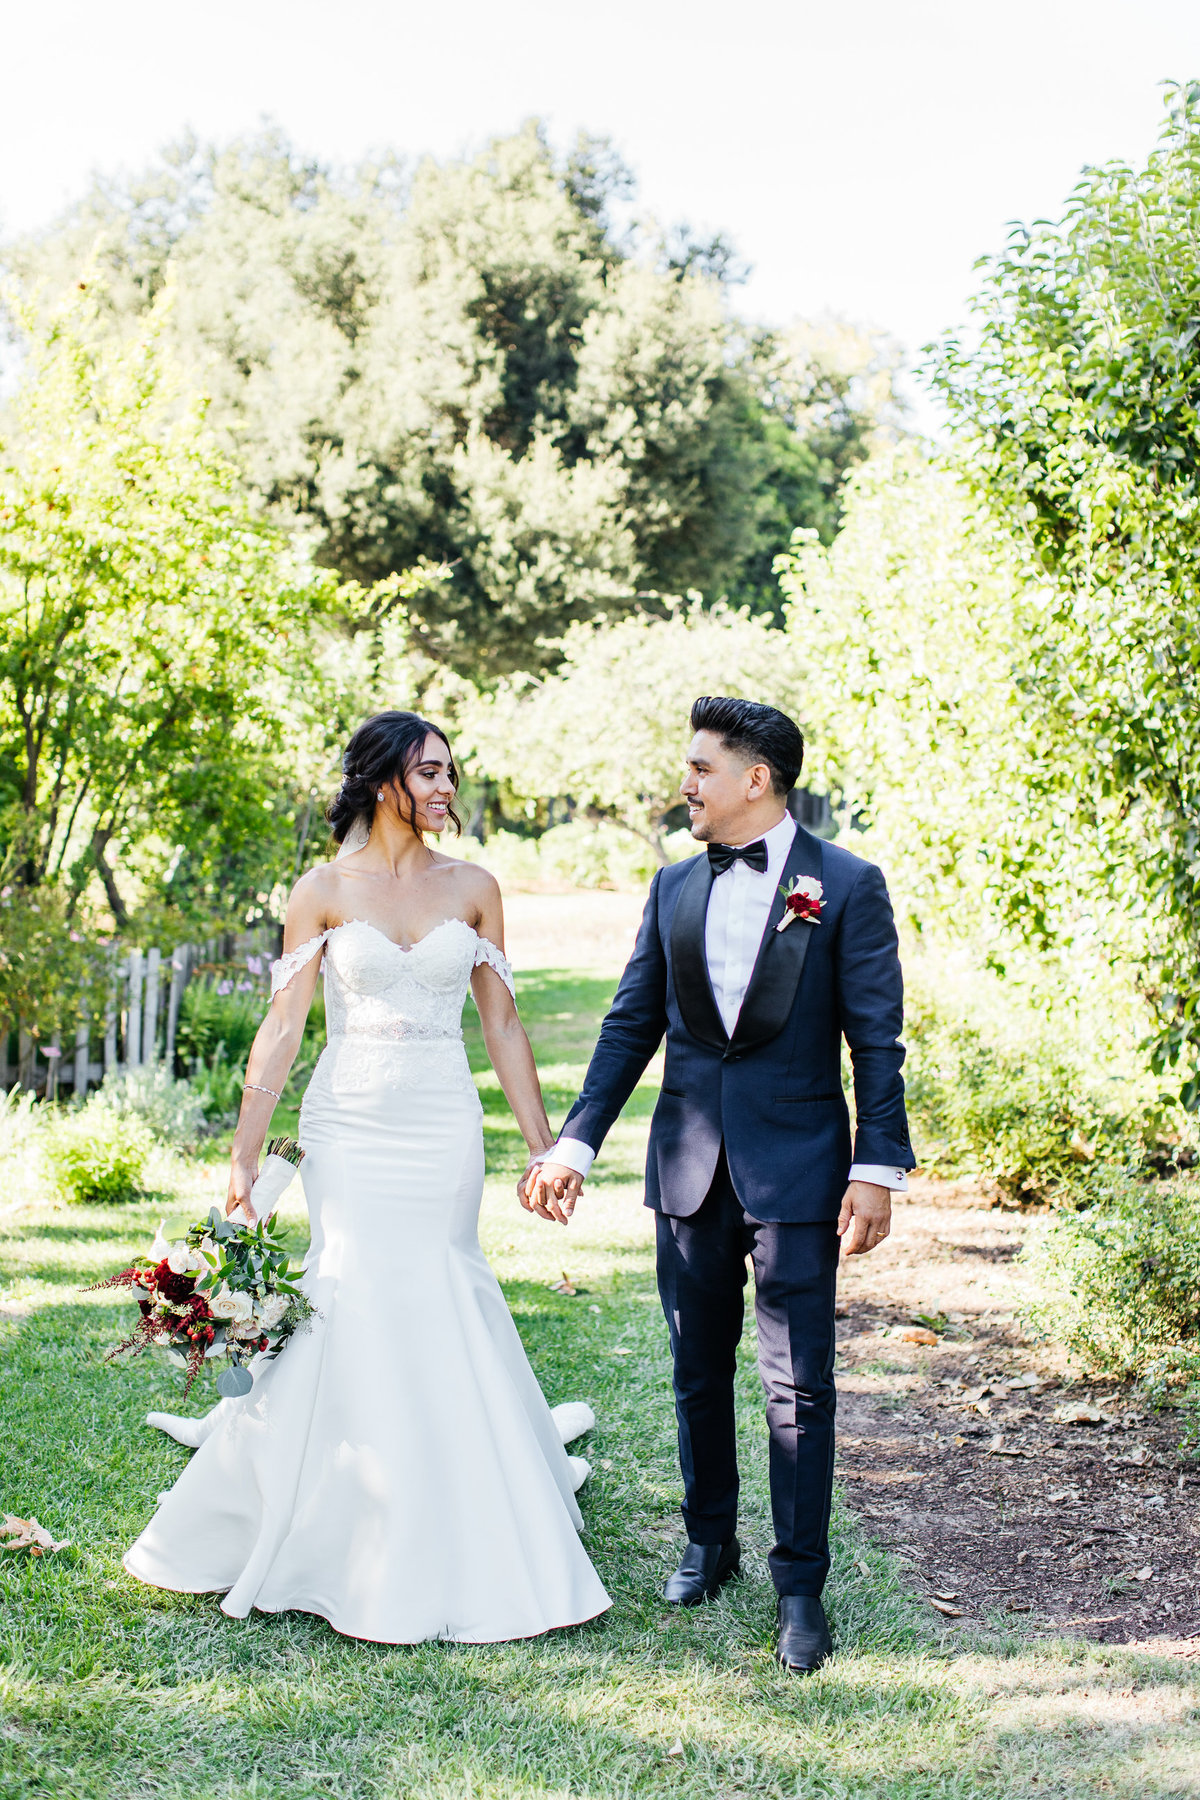 descanso-gardens-wedding-los-angeles-wedding-photographer-erin-marton-photography-27